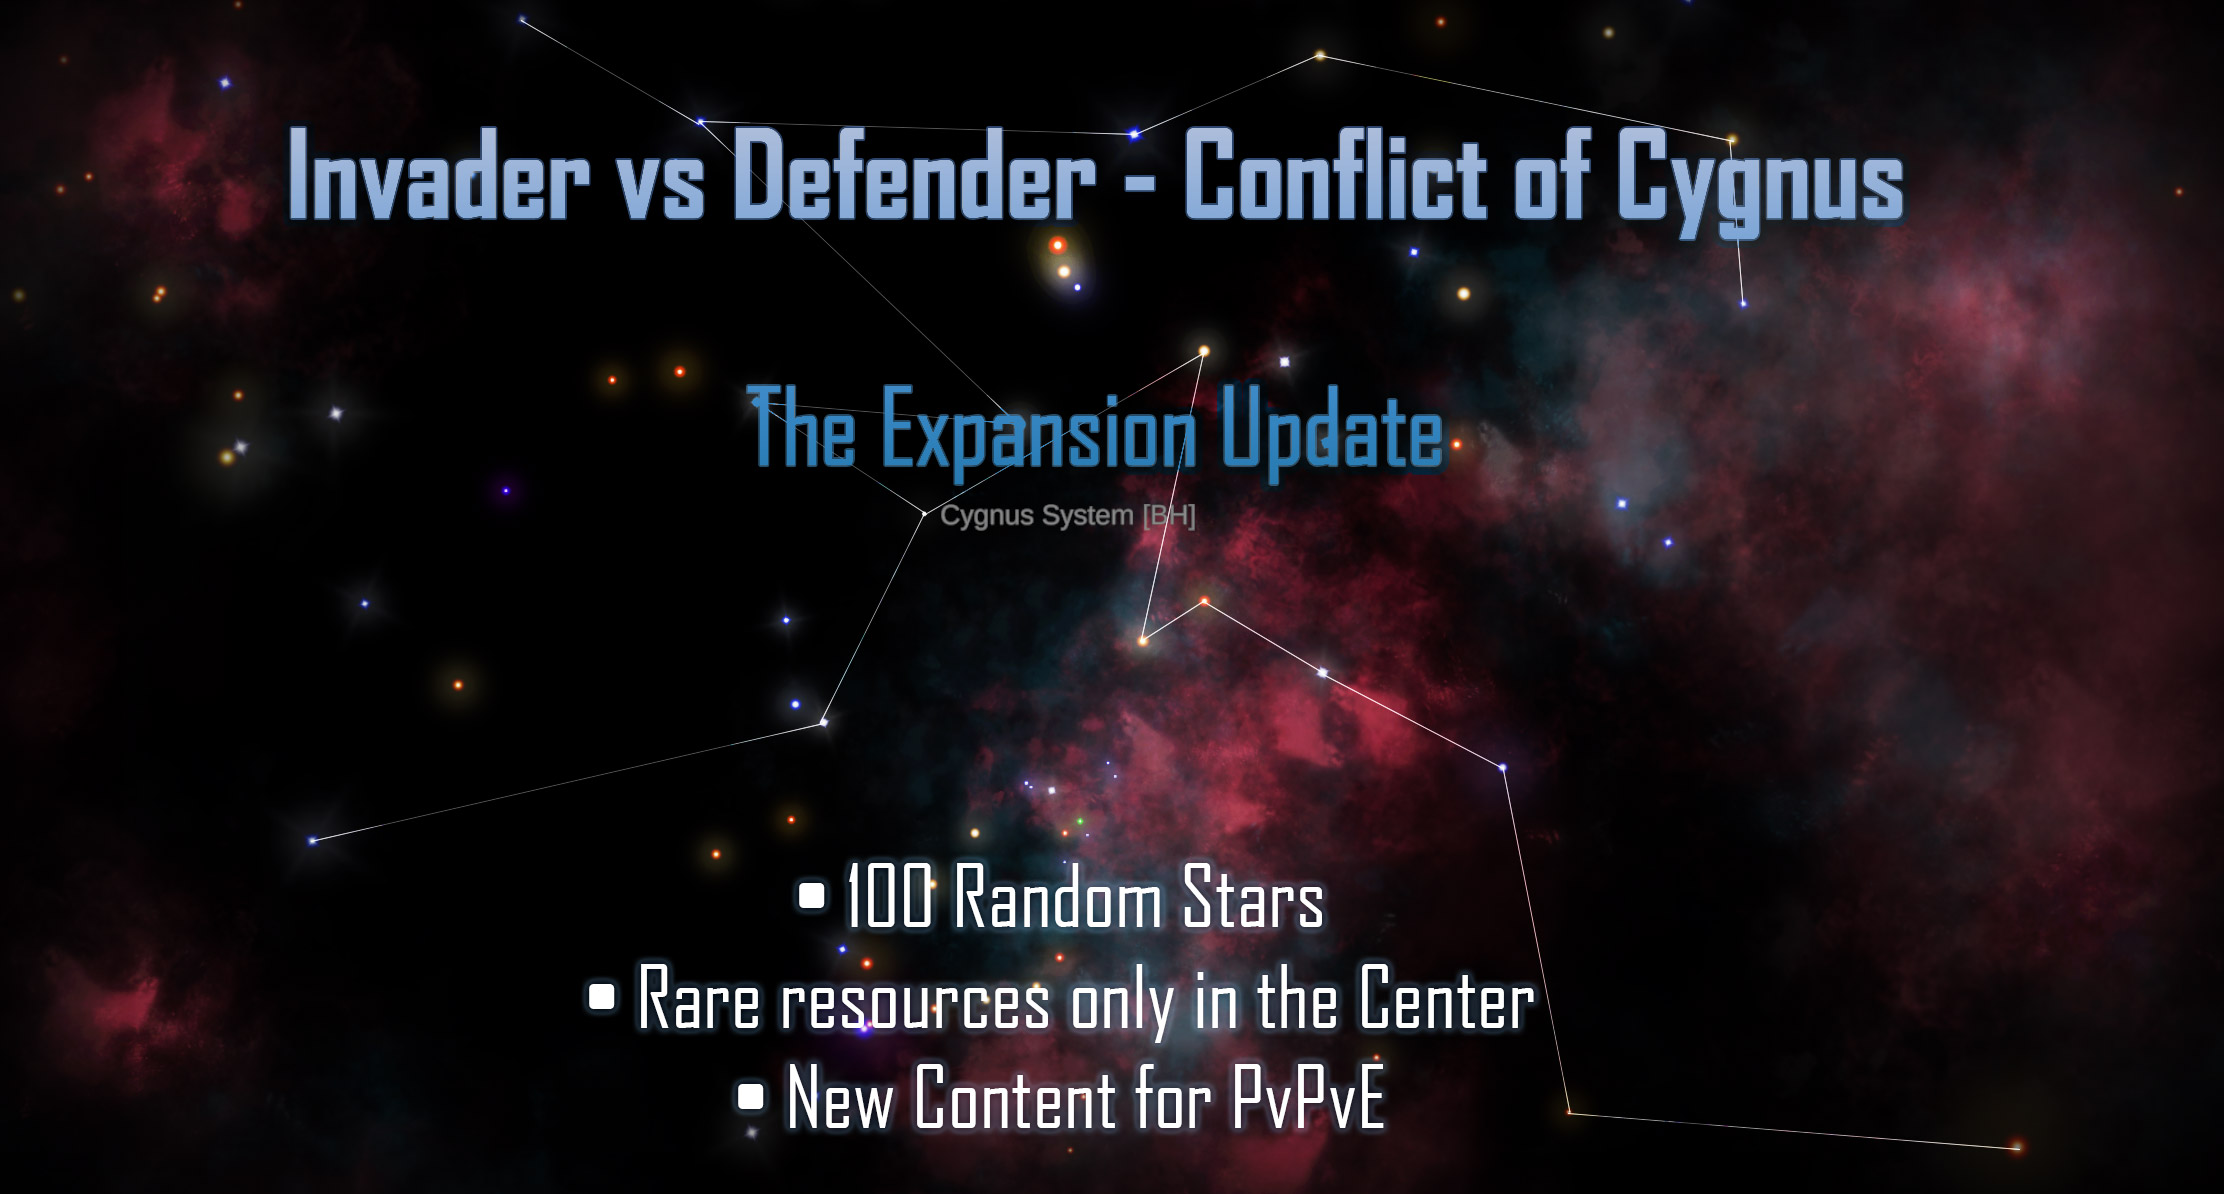 Invader-vs-Defender-Update.jpg